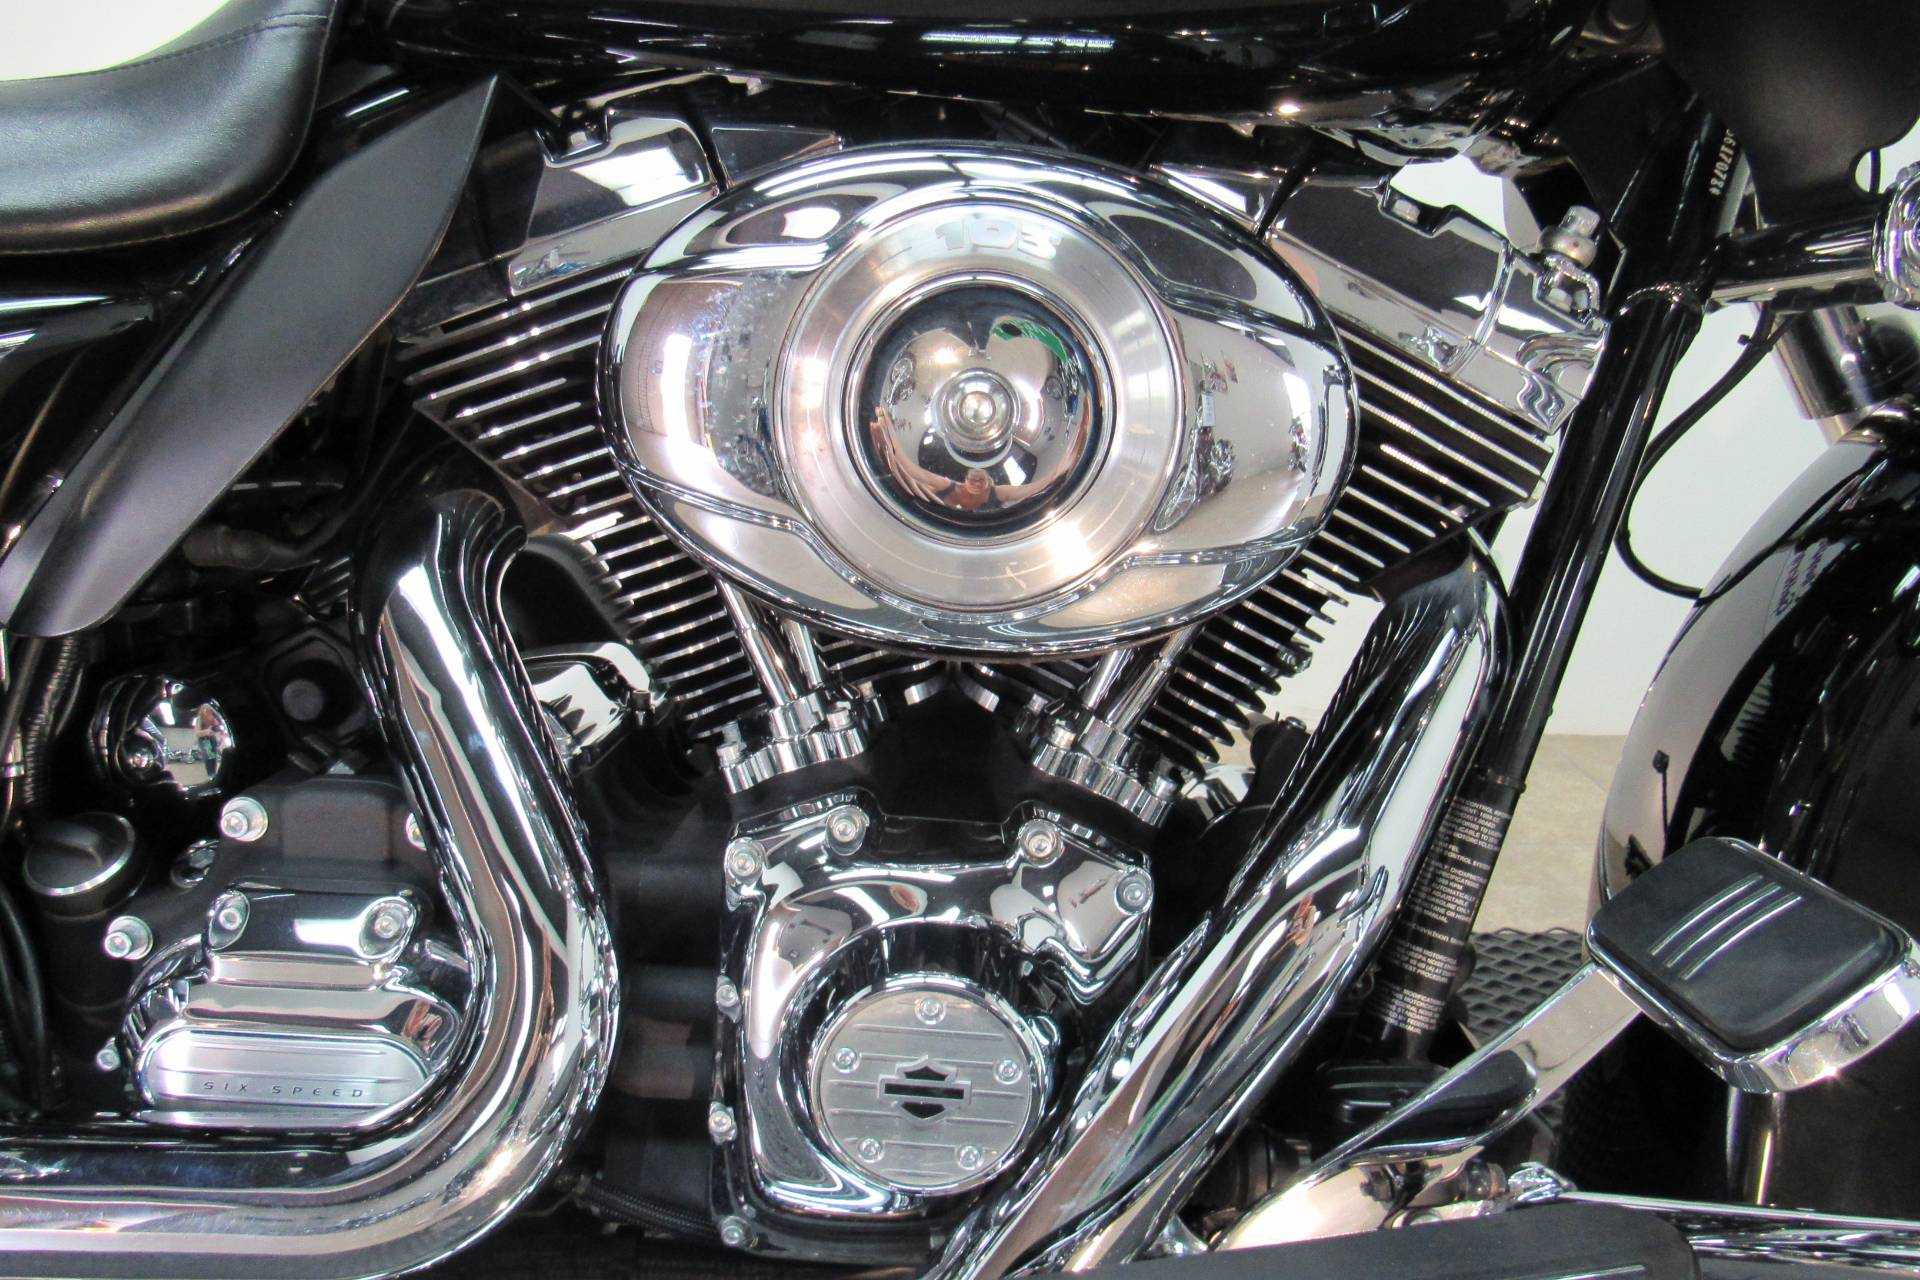 2013 Harley-Davidson Road Glide® Custom in Temecula, California - Photo 8